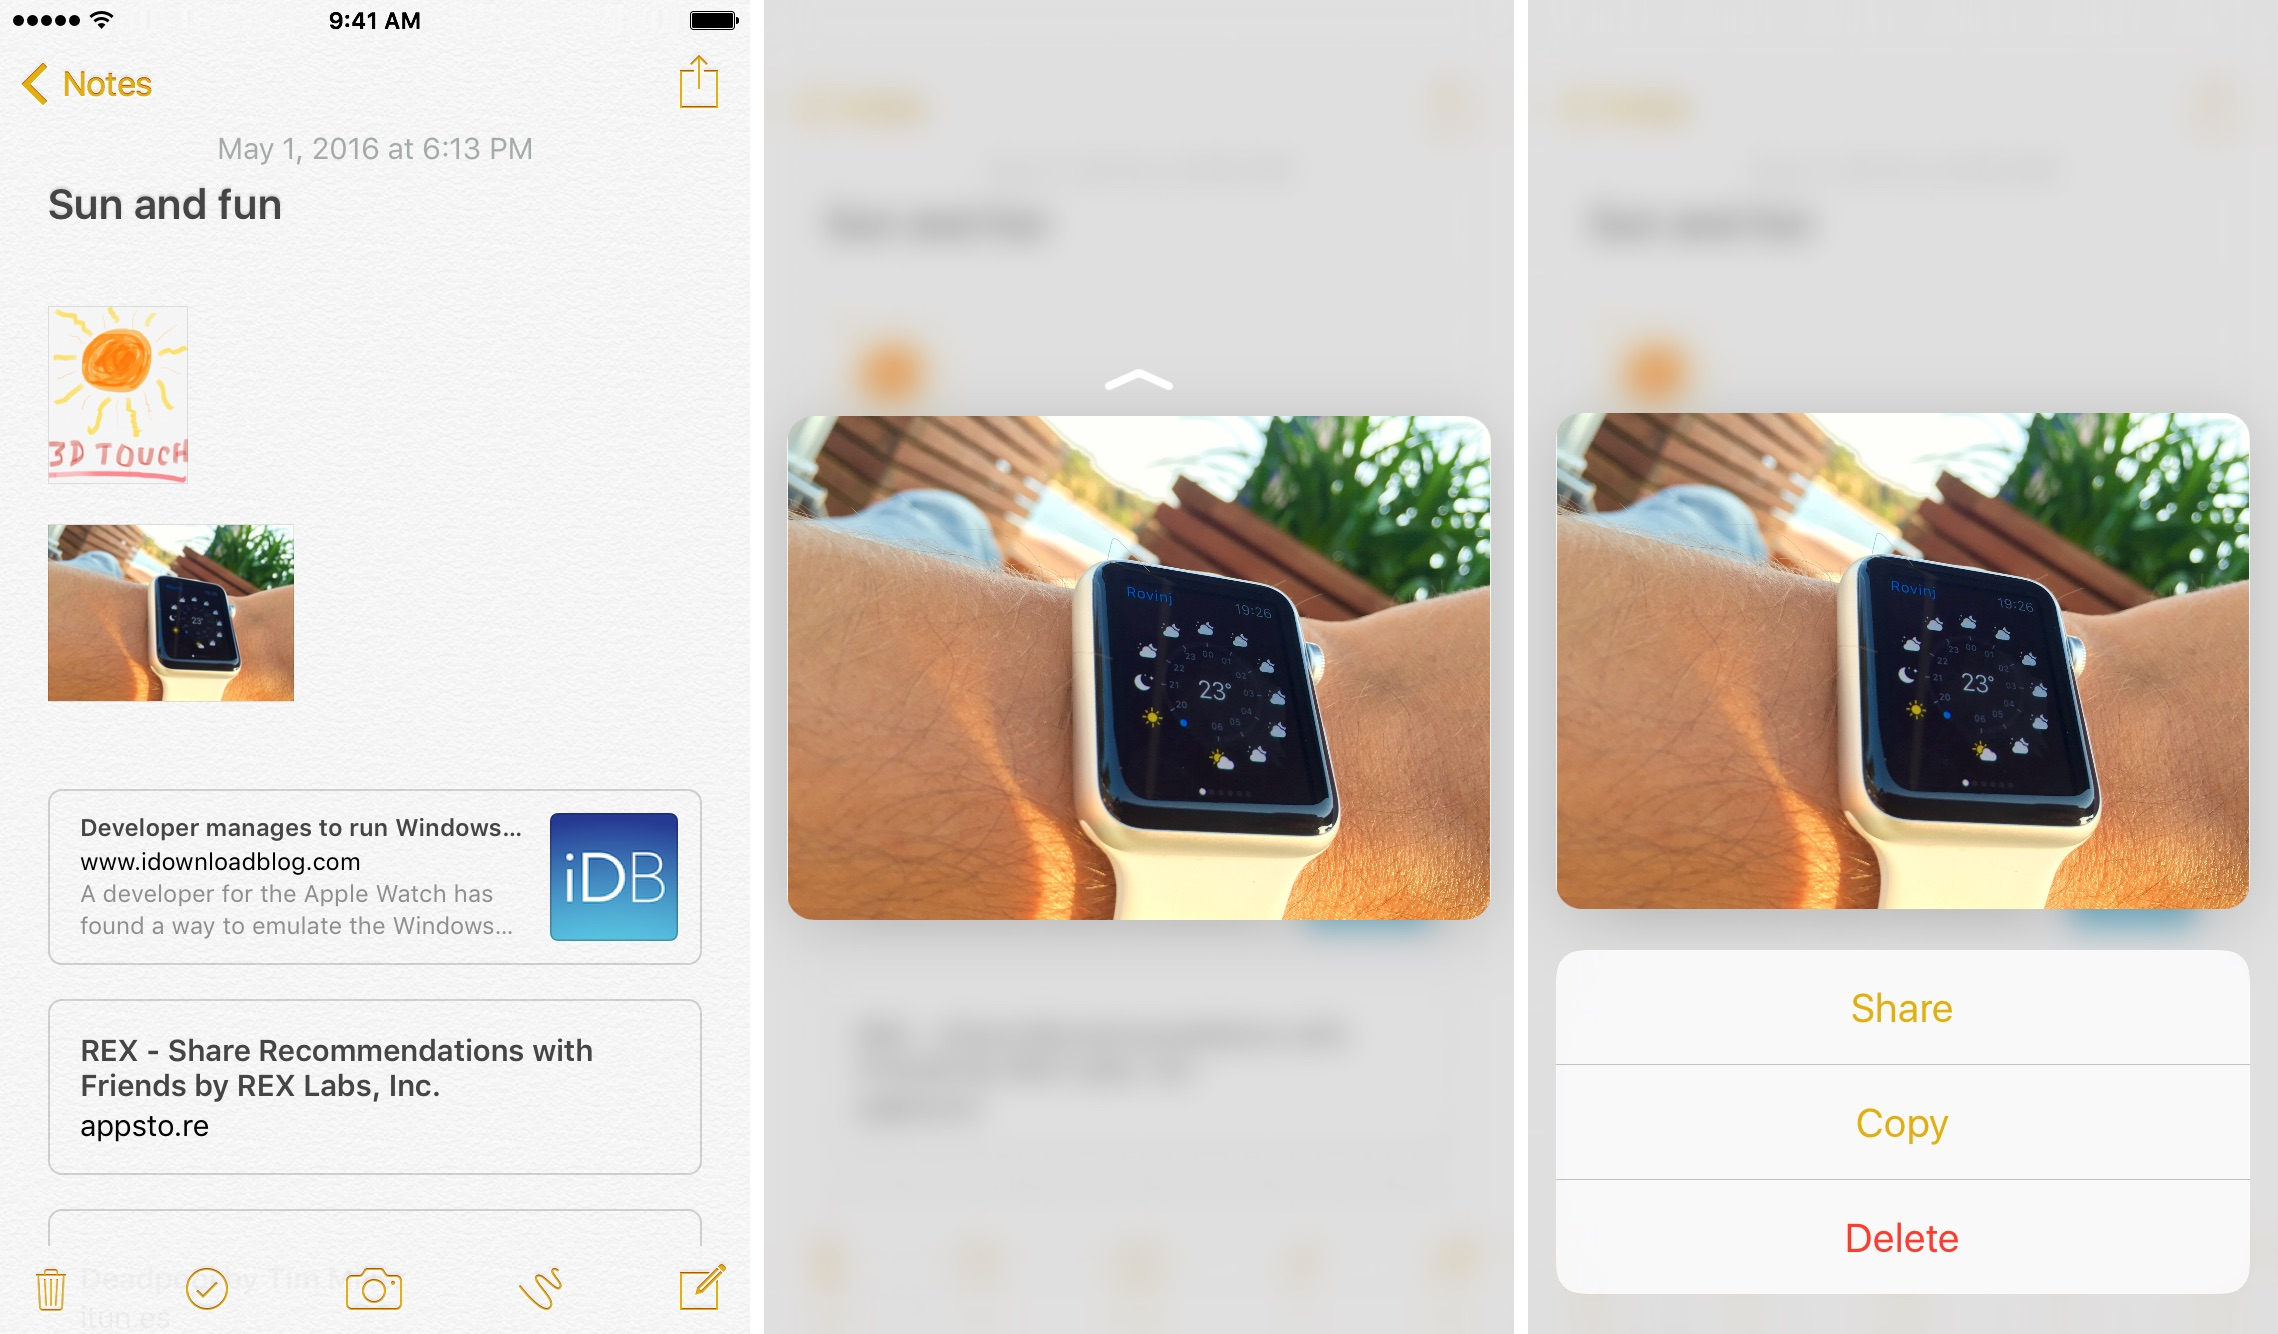 iOS 9 Notes 3D Touch preview attachments iPhone 6s screenshot 004